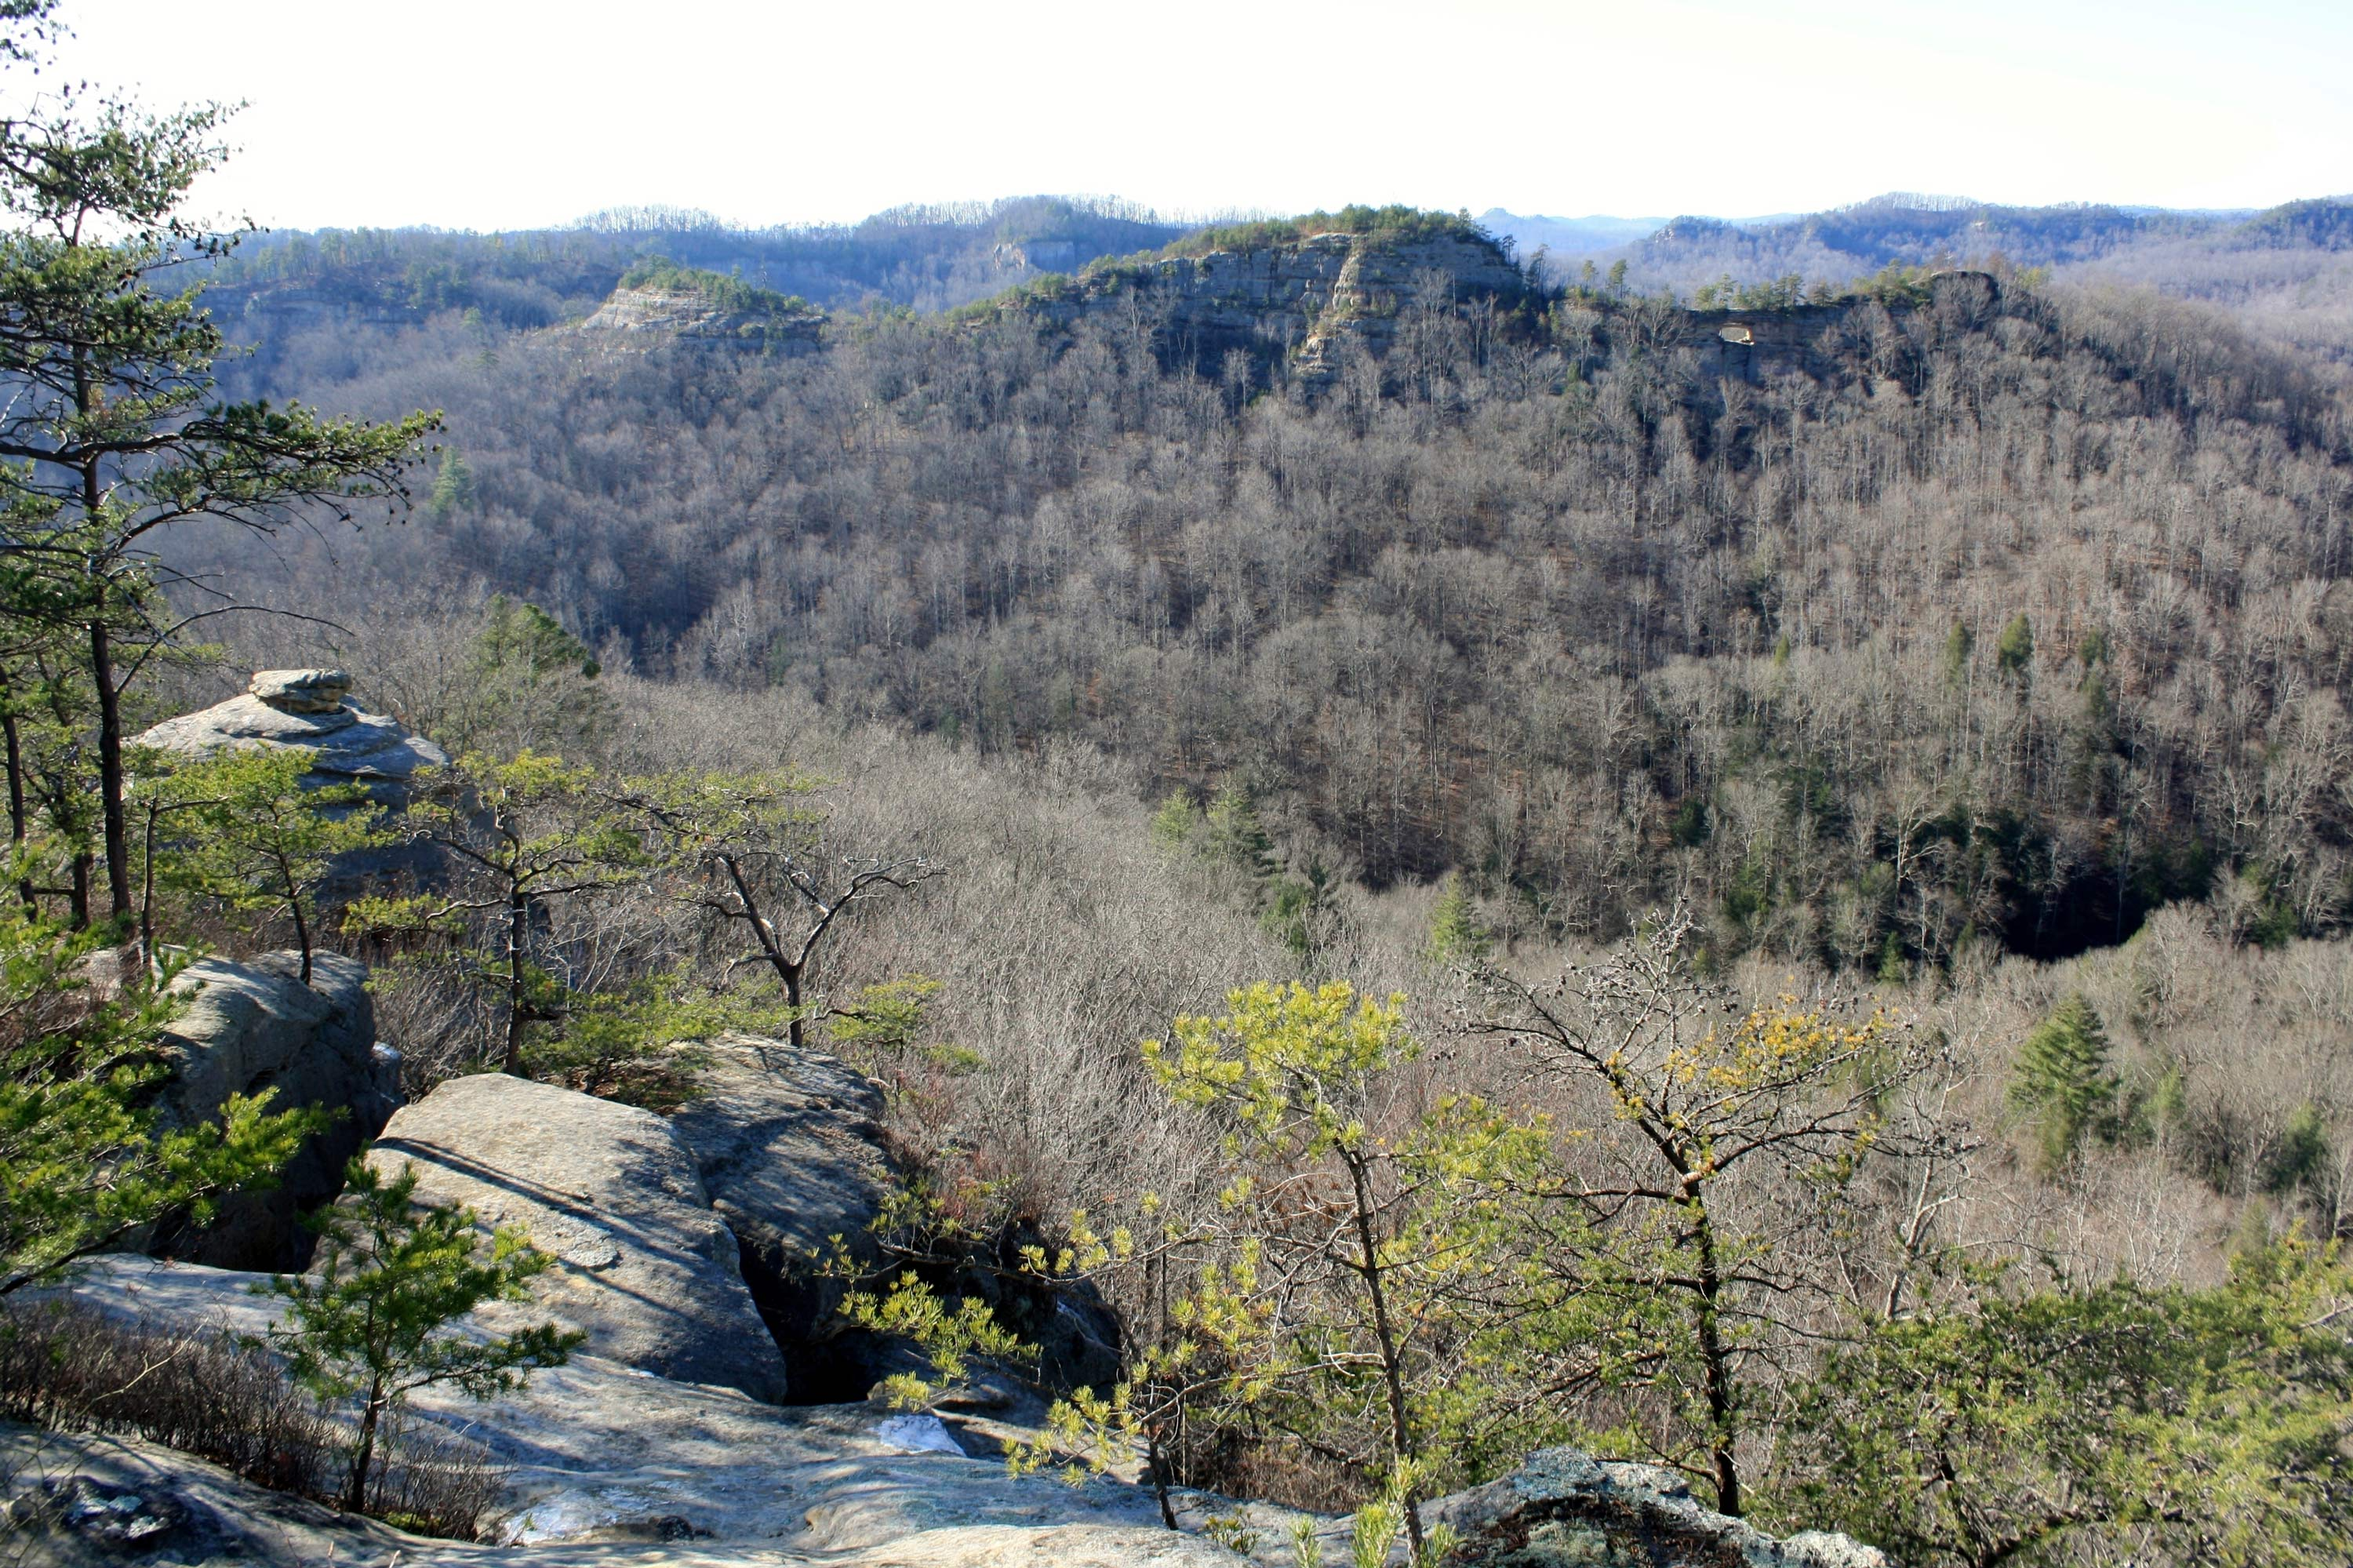 University of Kentucky student falls to her death off a cliff in Red River Gorge